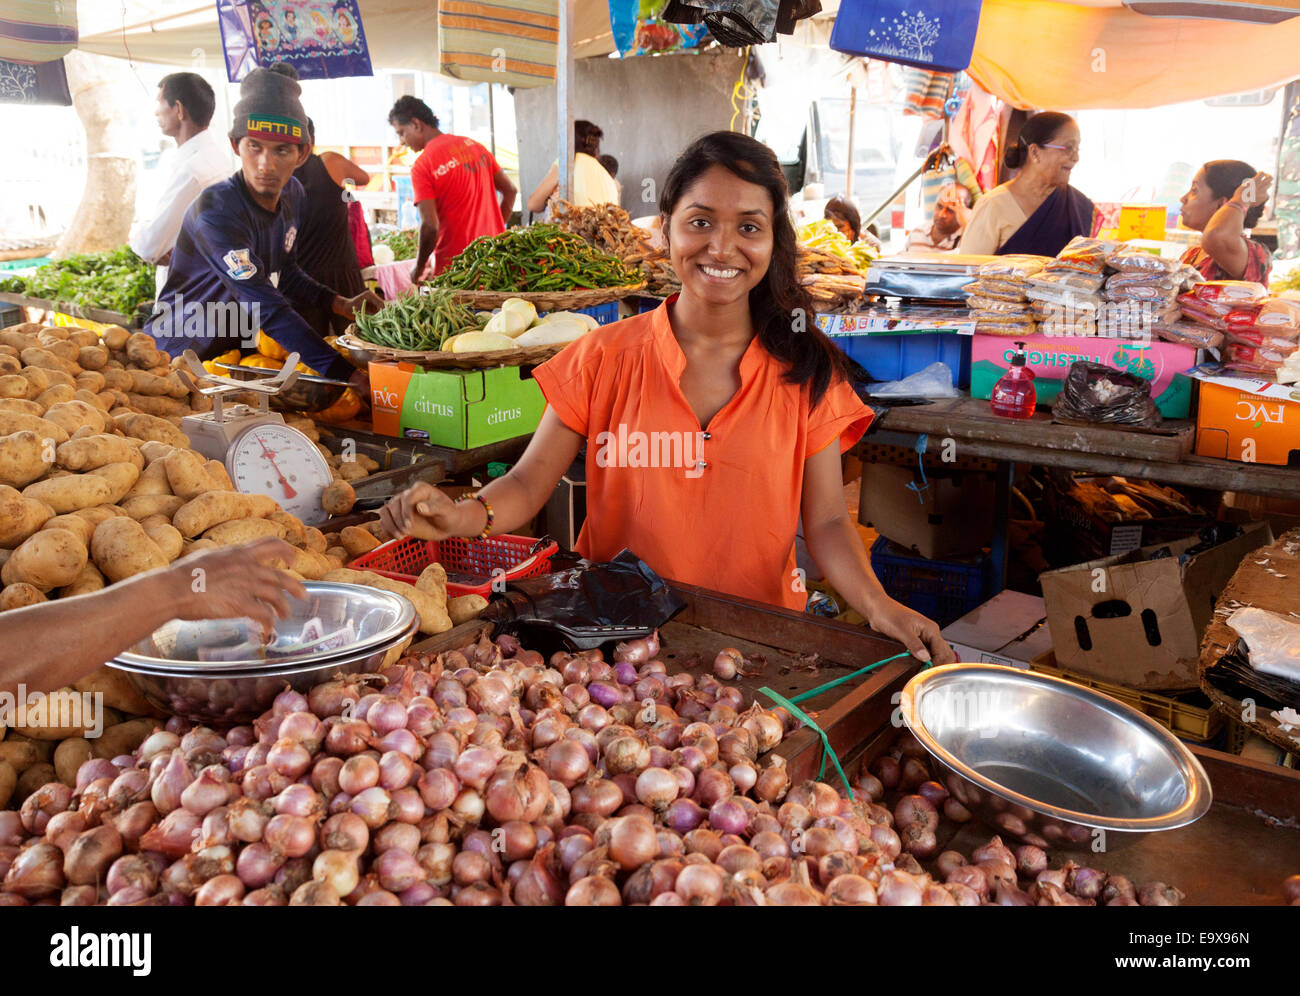 smiling-mauritius-woman-selling-food-at-her-stall-mahebourg-town-market-E9X96N.jpg